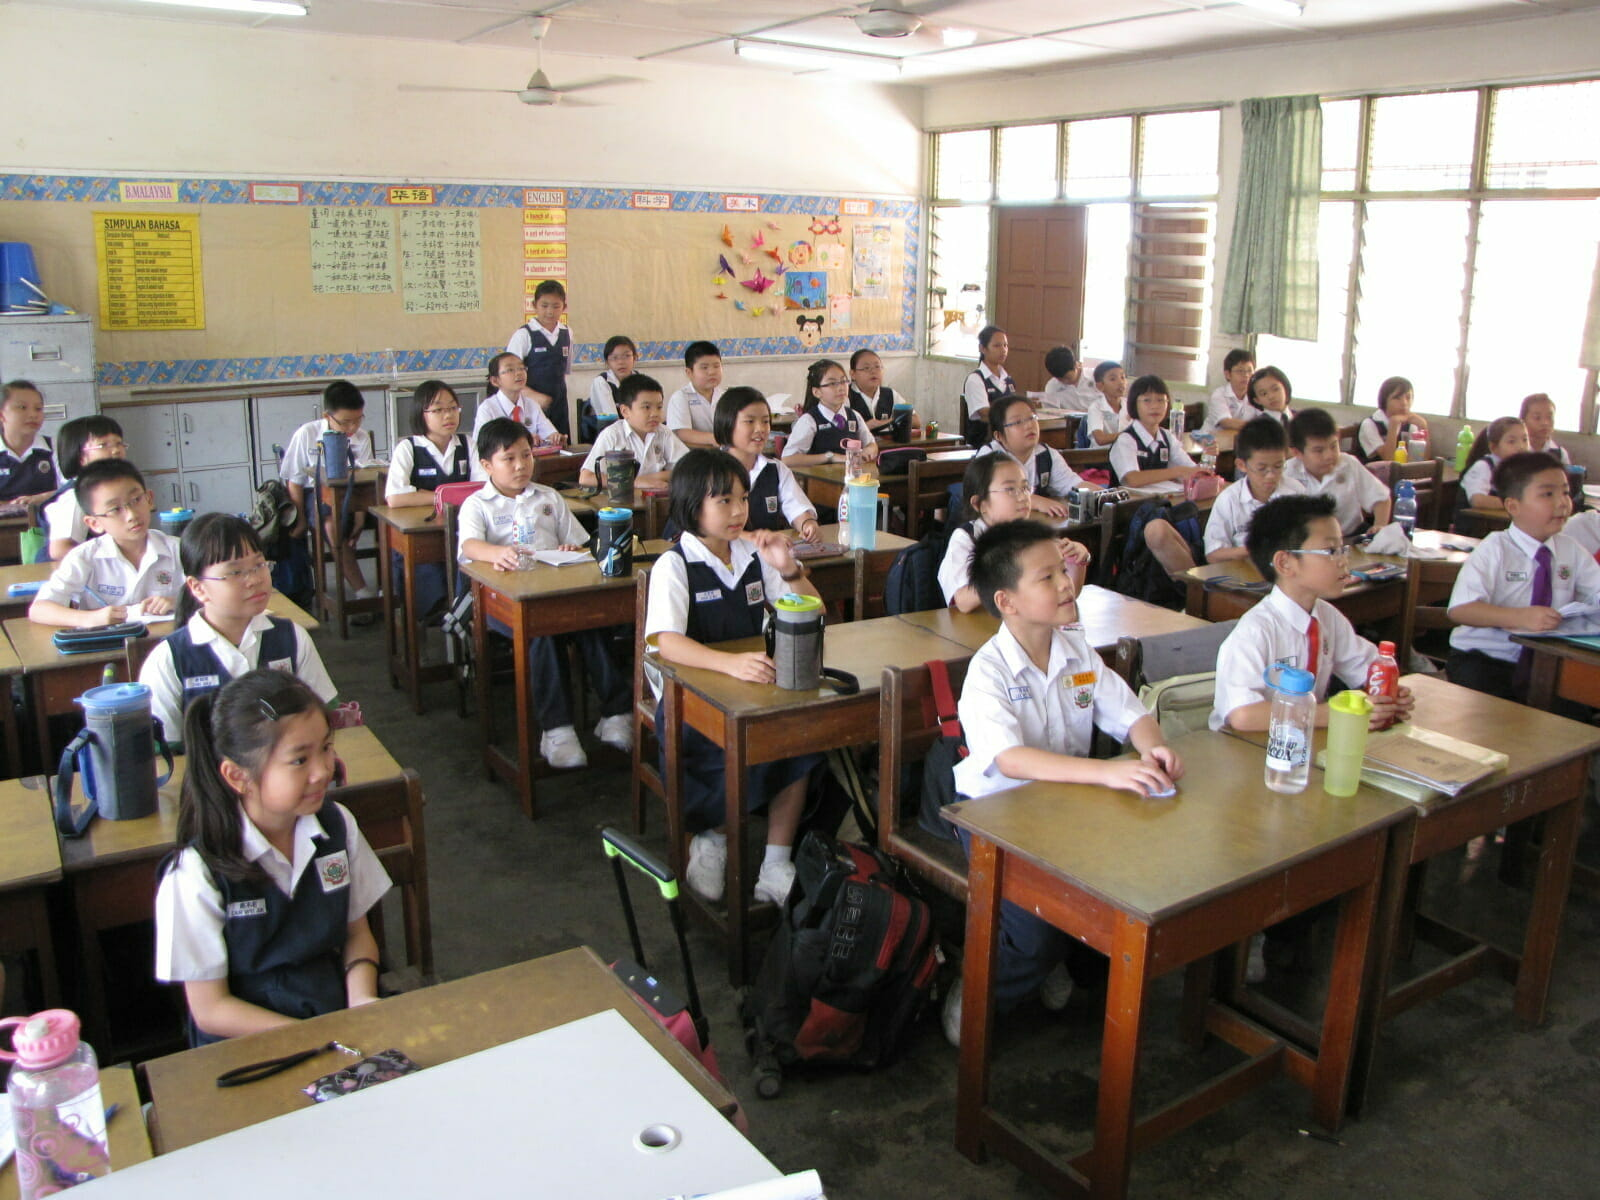 classroom full of attentive students in malaysia